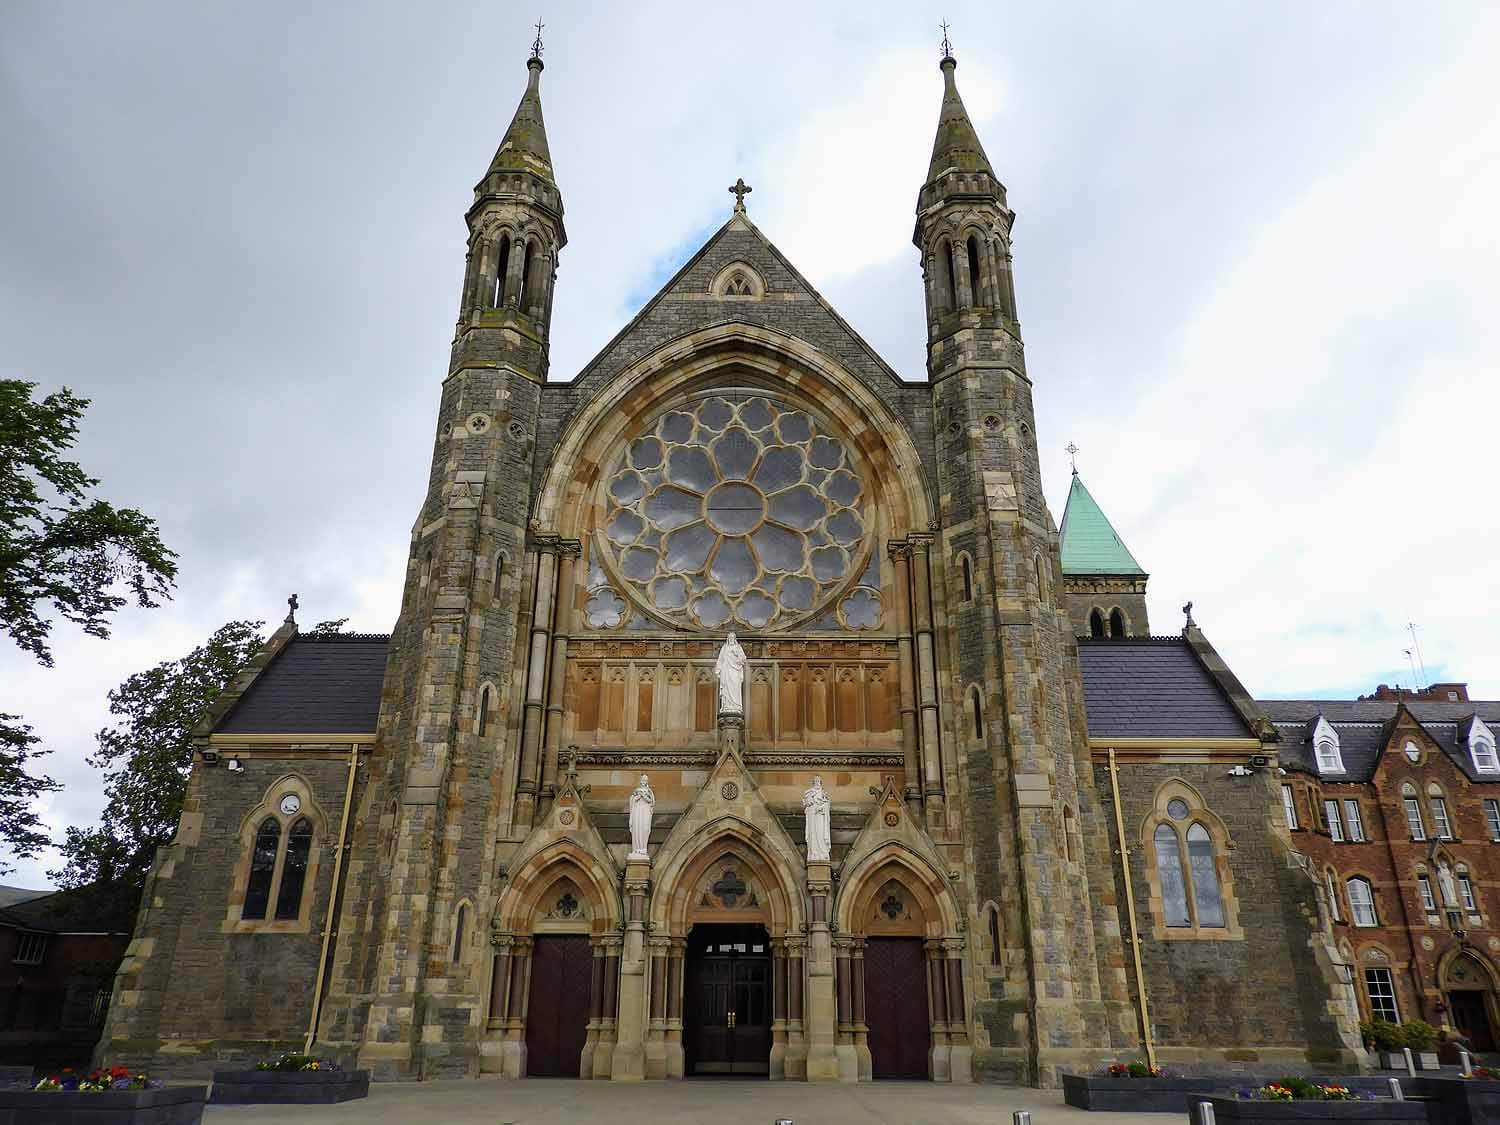 northern-ireland-belfast-church-clonard-monastery.jpg